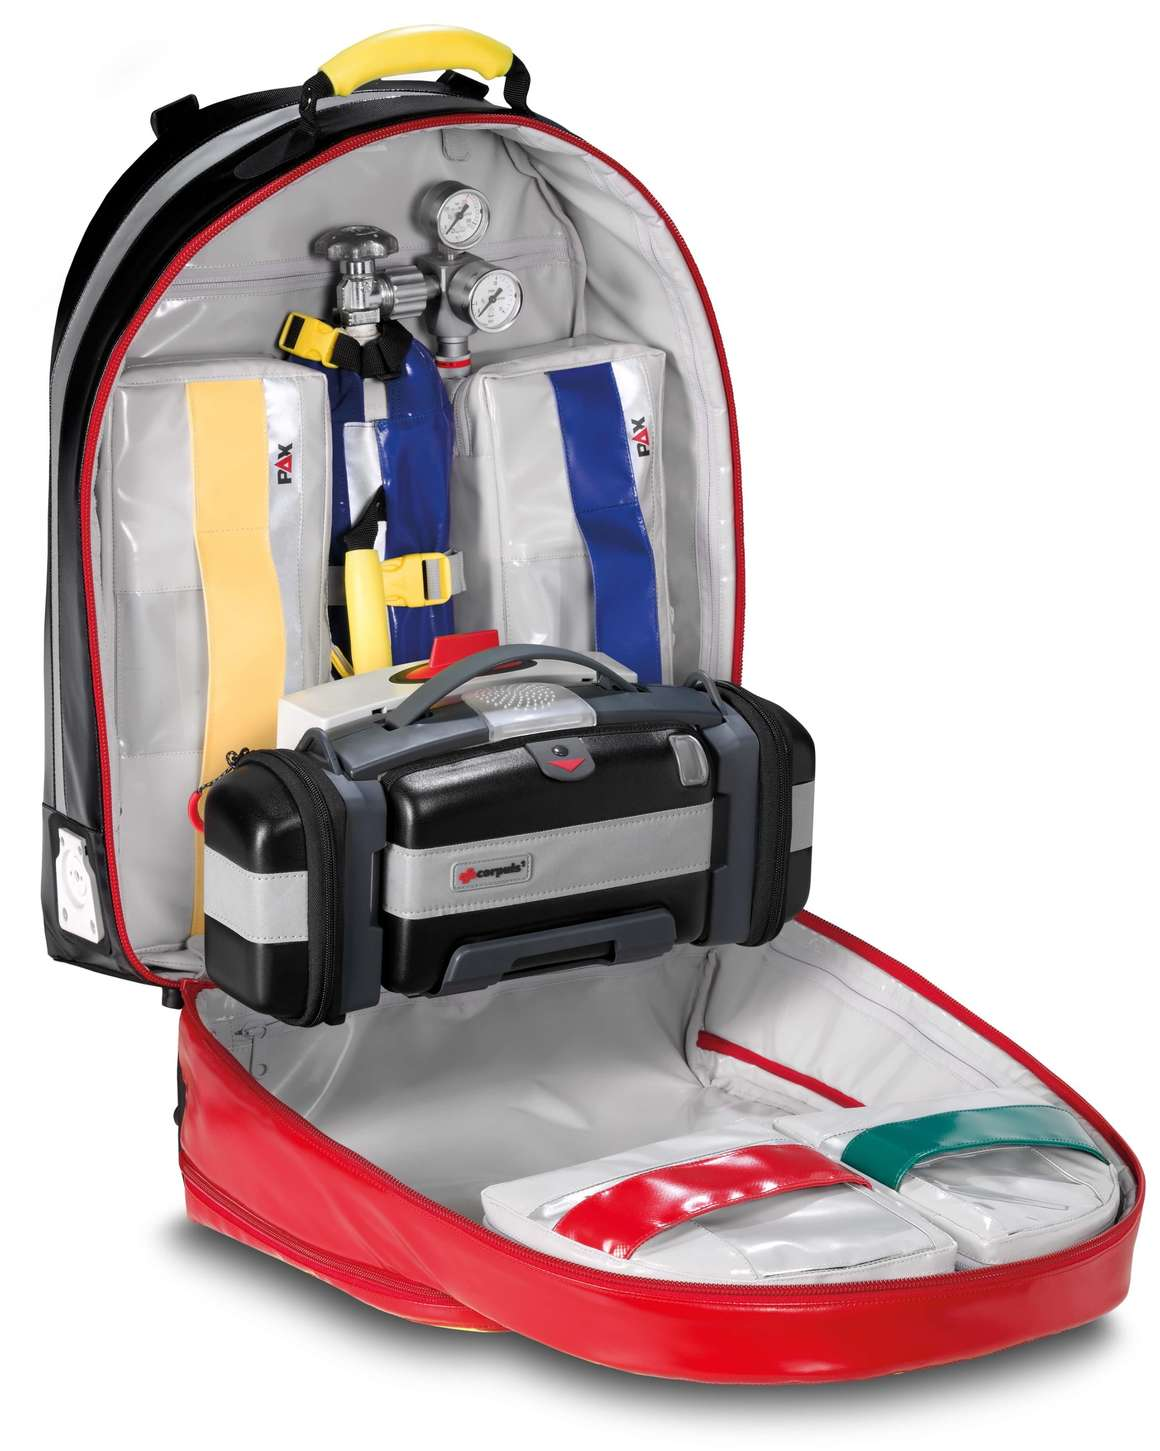 Emergency Backpack BLS (Basic Life Support)